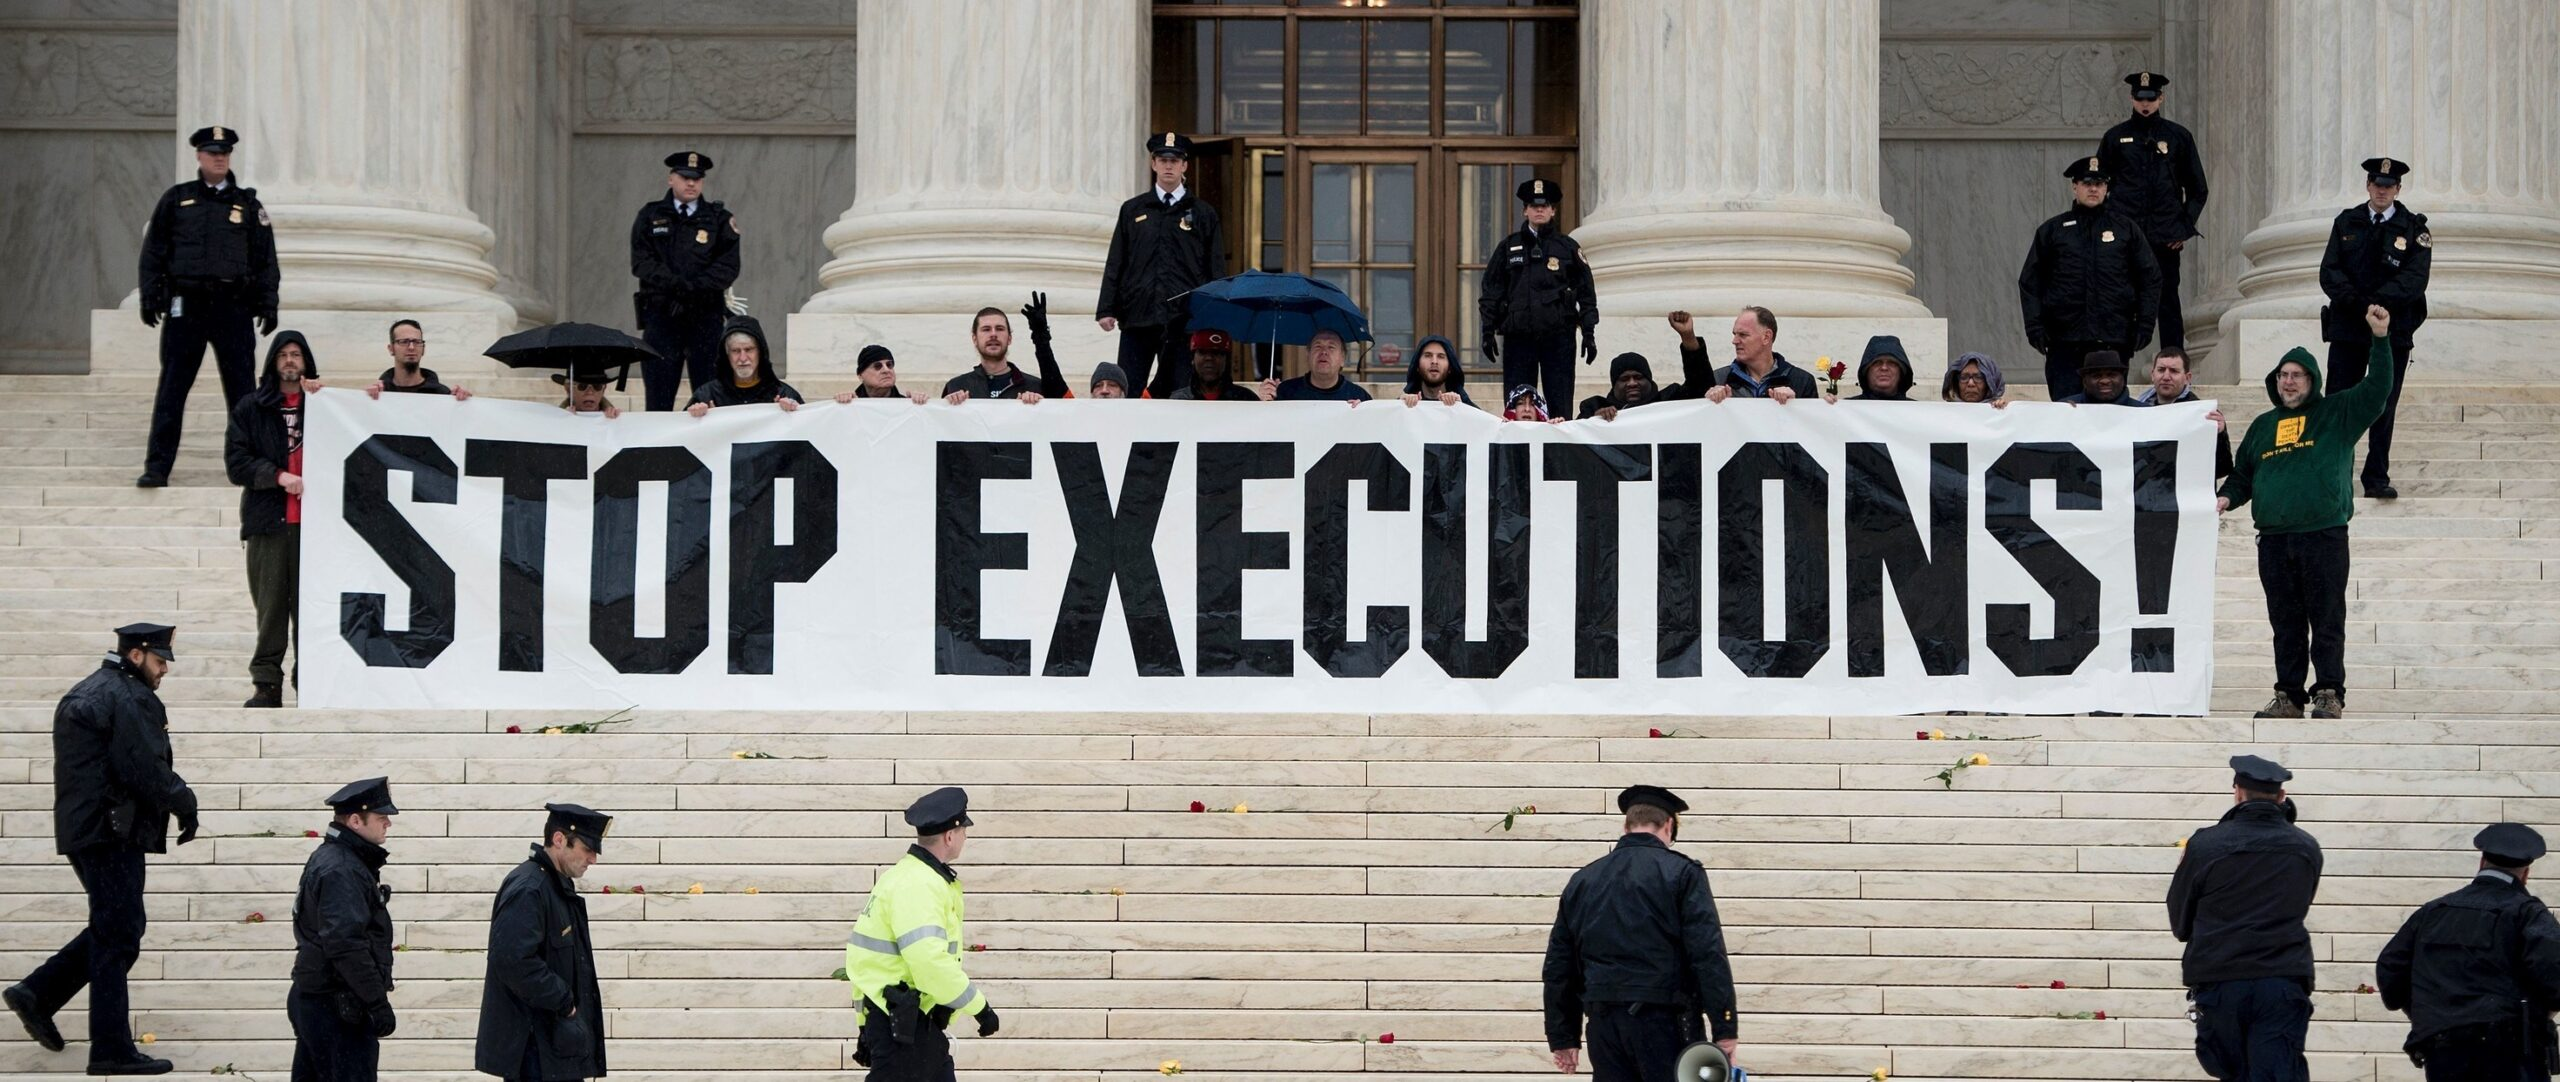 Death penalty 2020: Despite Covid-19, some countries ruthlessly pursued death sentences and executions